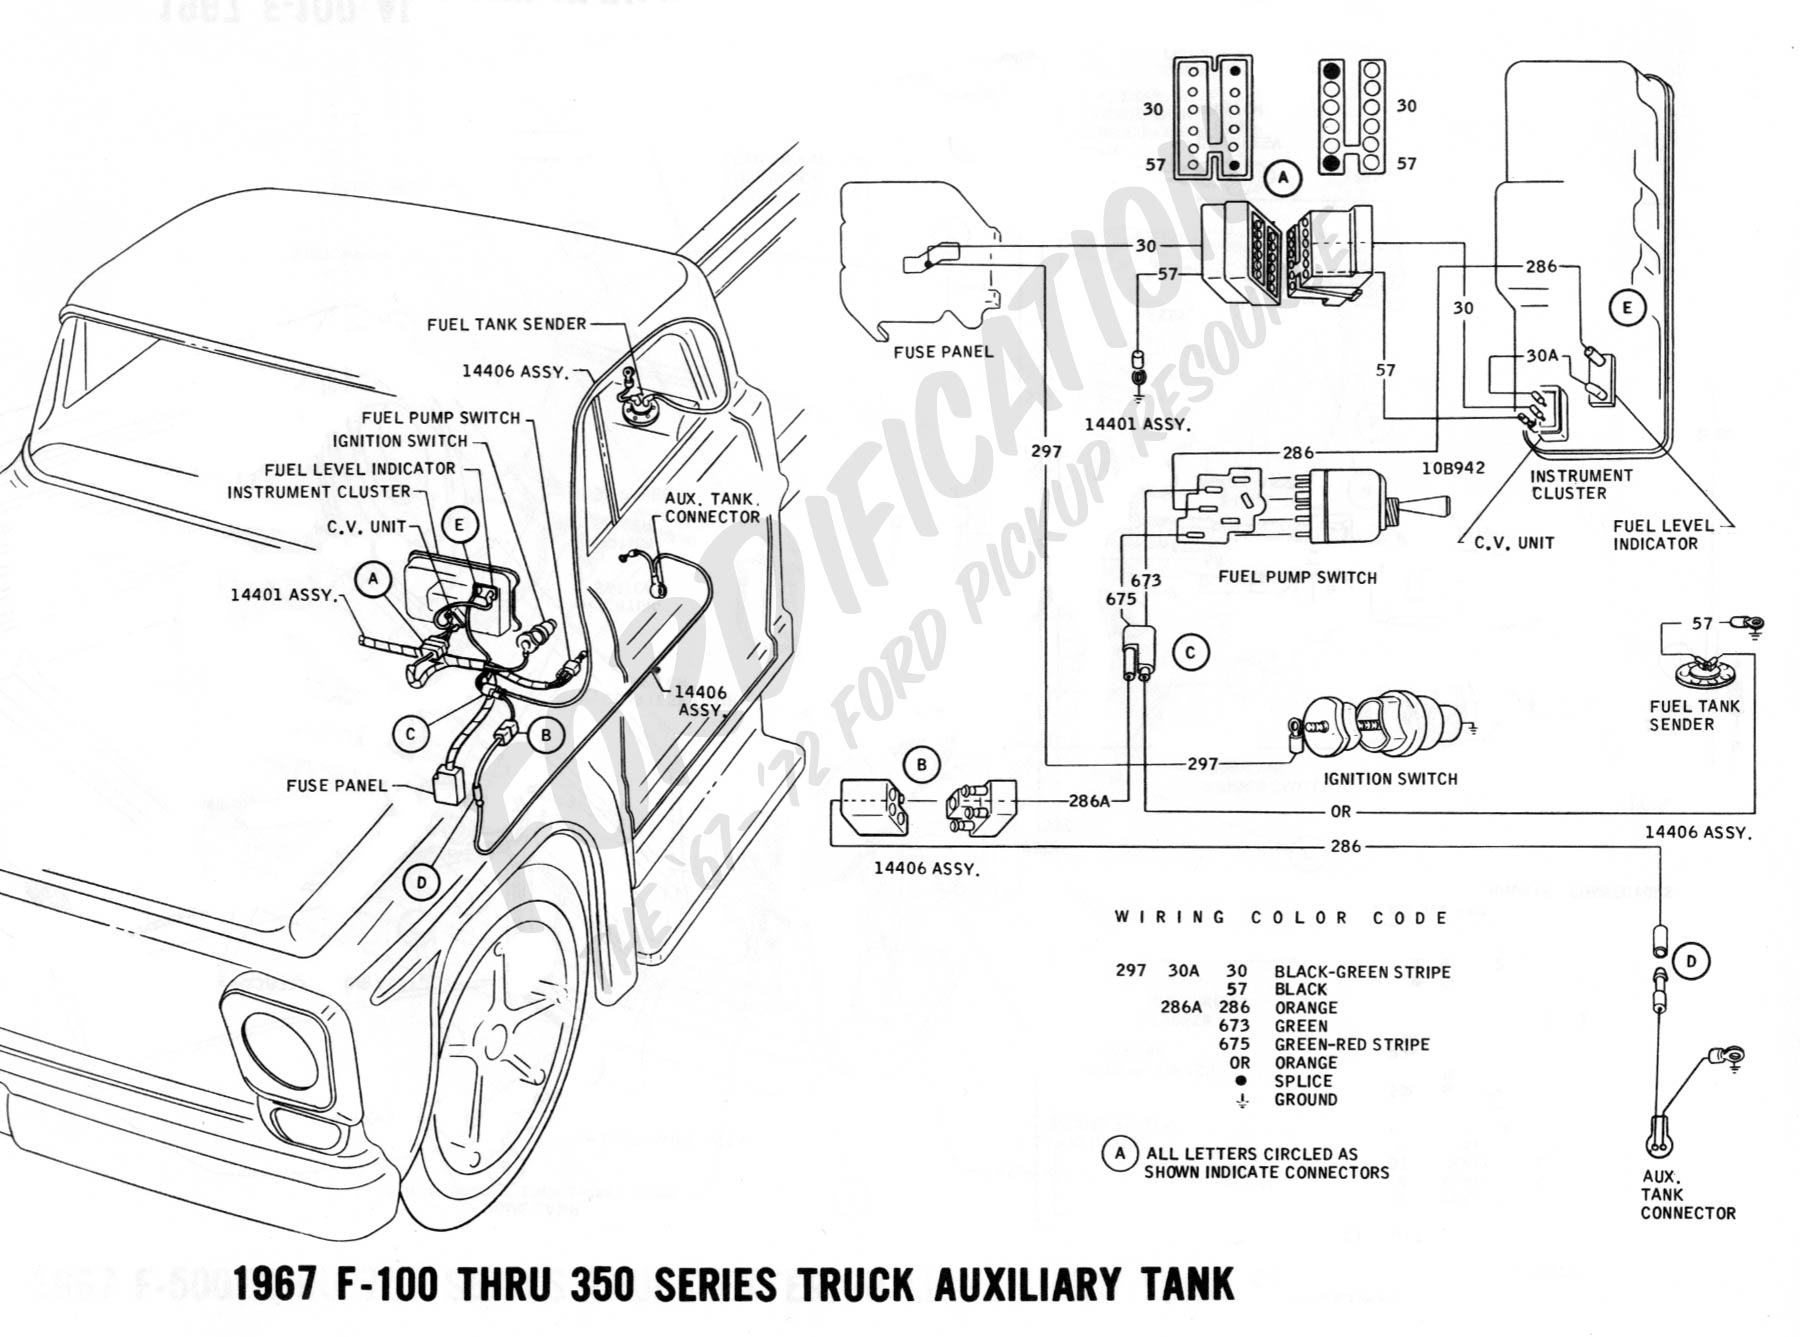 wiring 1967auxtank fuel tank selector valve page 10 ford truck enthusiasts forums  at n-0.co